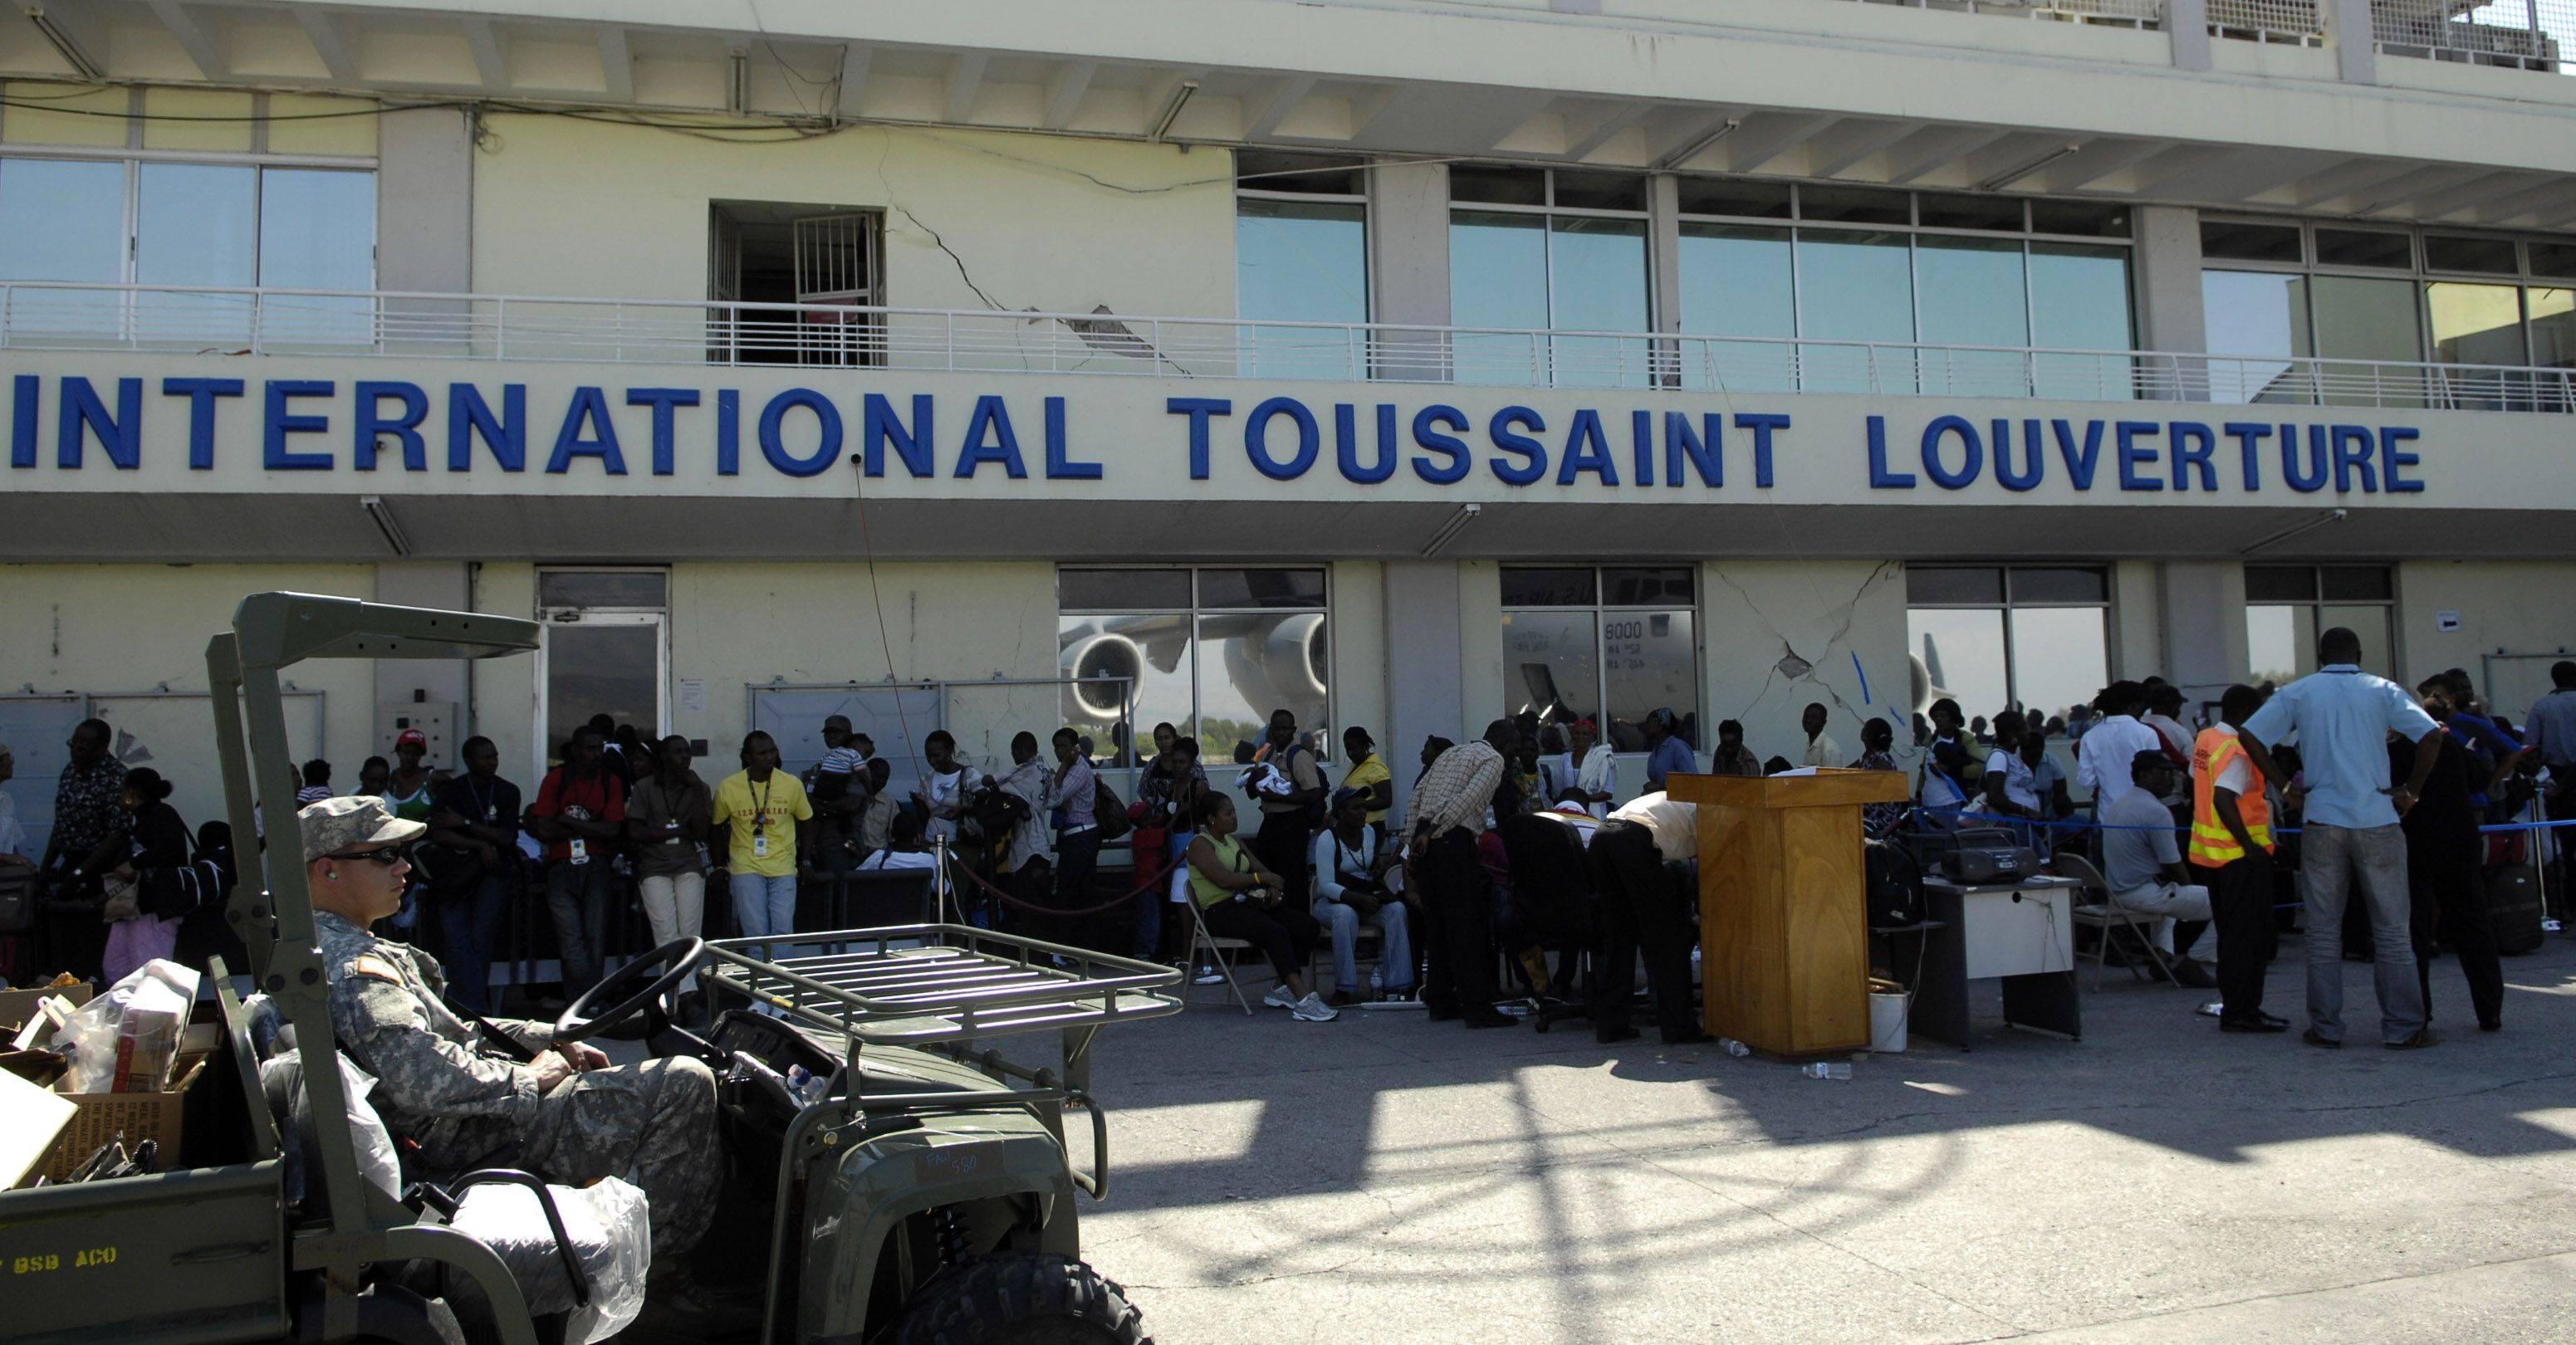 US citizens living in Haiti reported waiting over 10 hours through various layers of processing through several organizations in order to get on a flight.